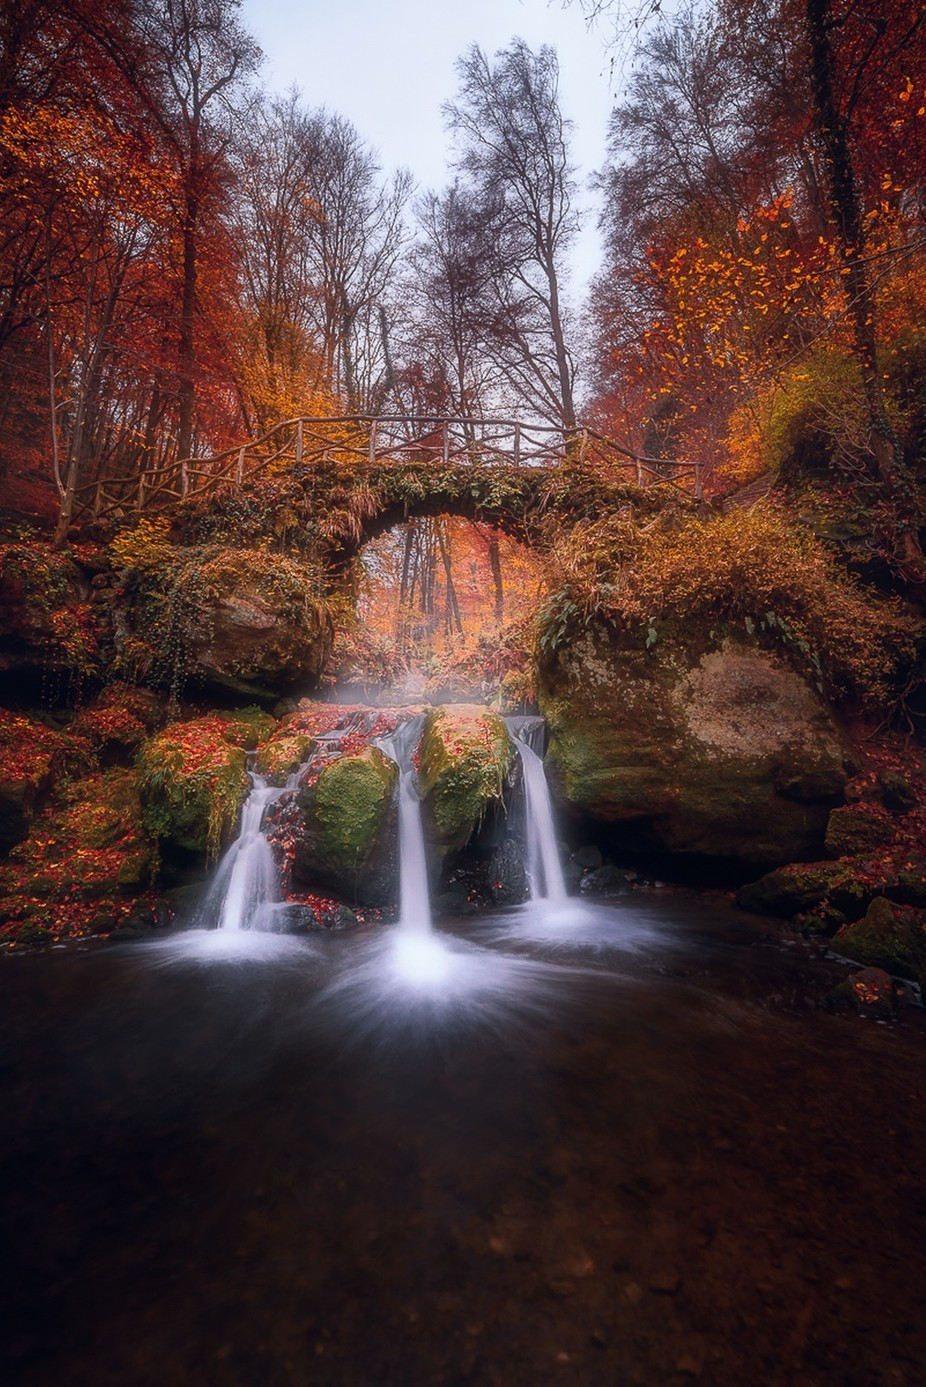 Enchanted waterfall by Fannie_Jowski - Image Of The Month Photo Contest Vol 28